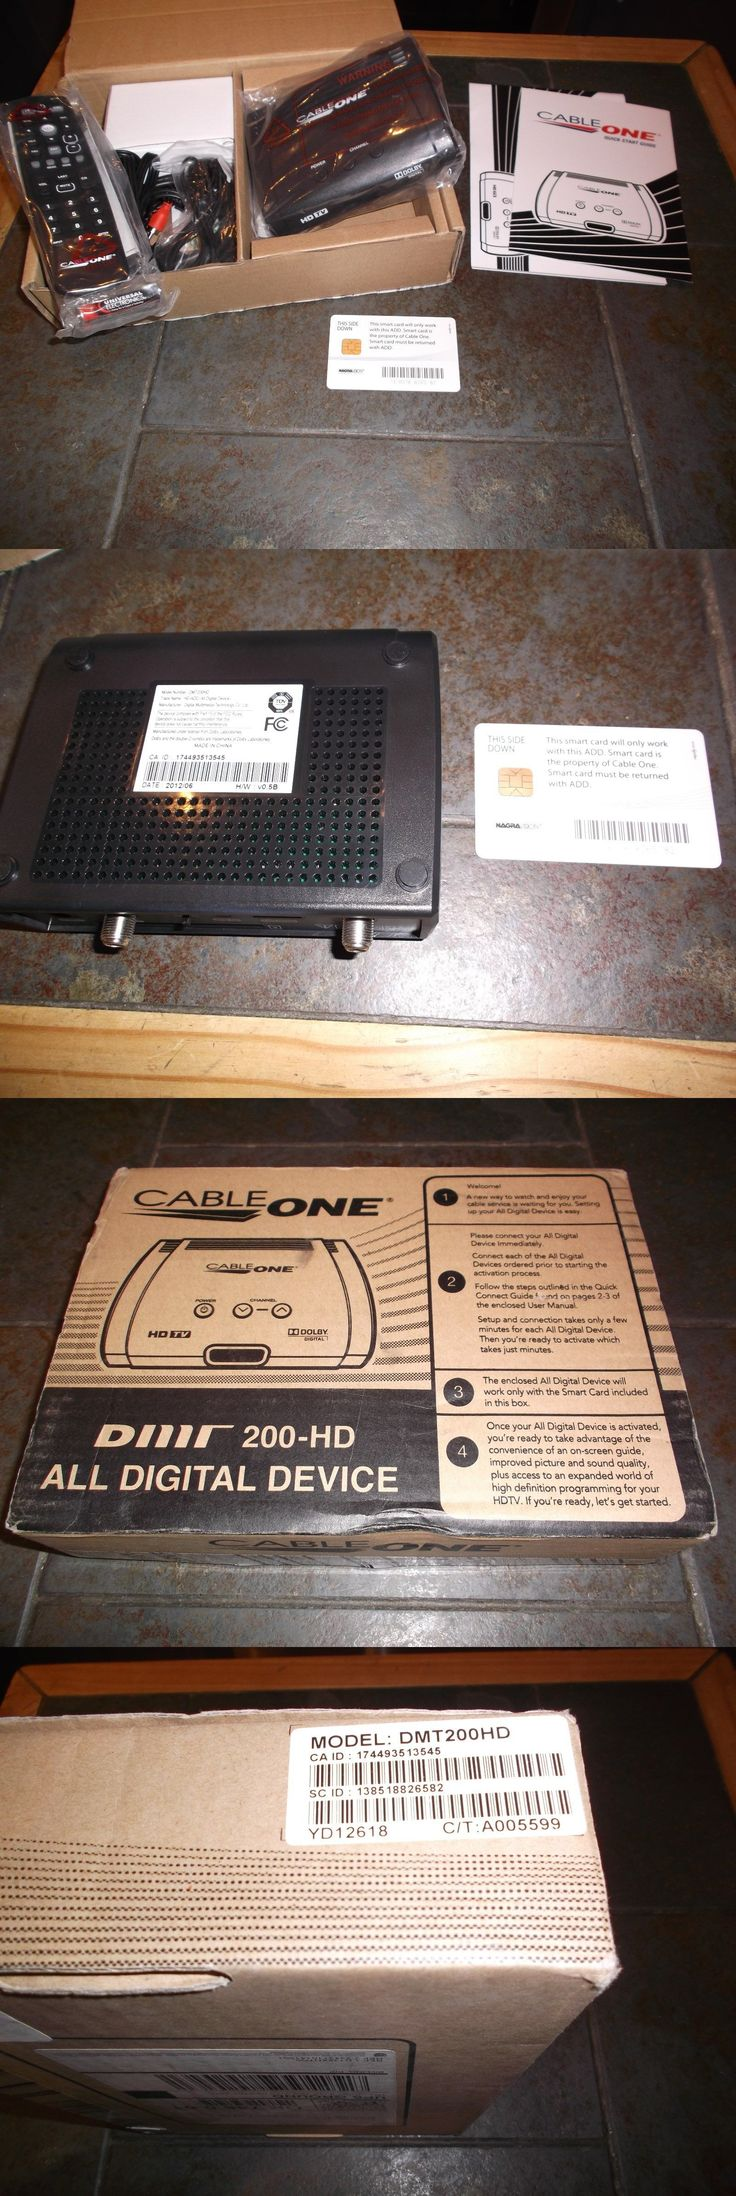 Satellite TV Receivers: Cable One Dmt200hd Hd Cable Box With Full Accessories And Smart Card -> BUY IT NOW ONLY: $49.99 on eBay!